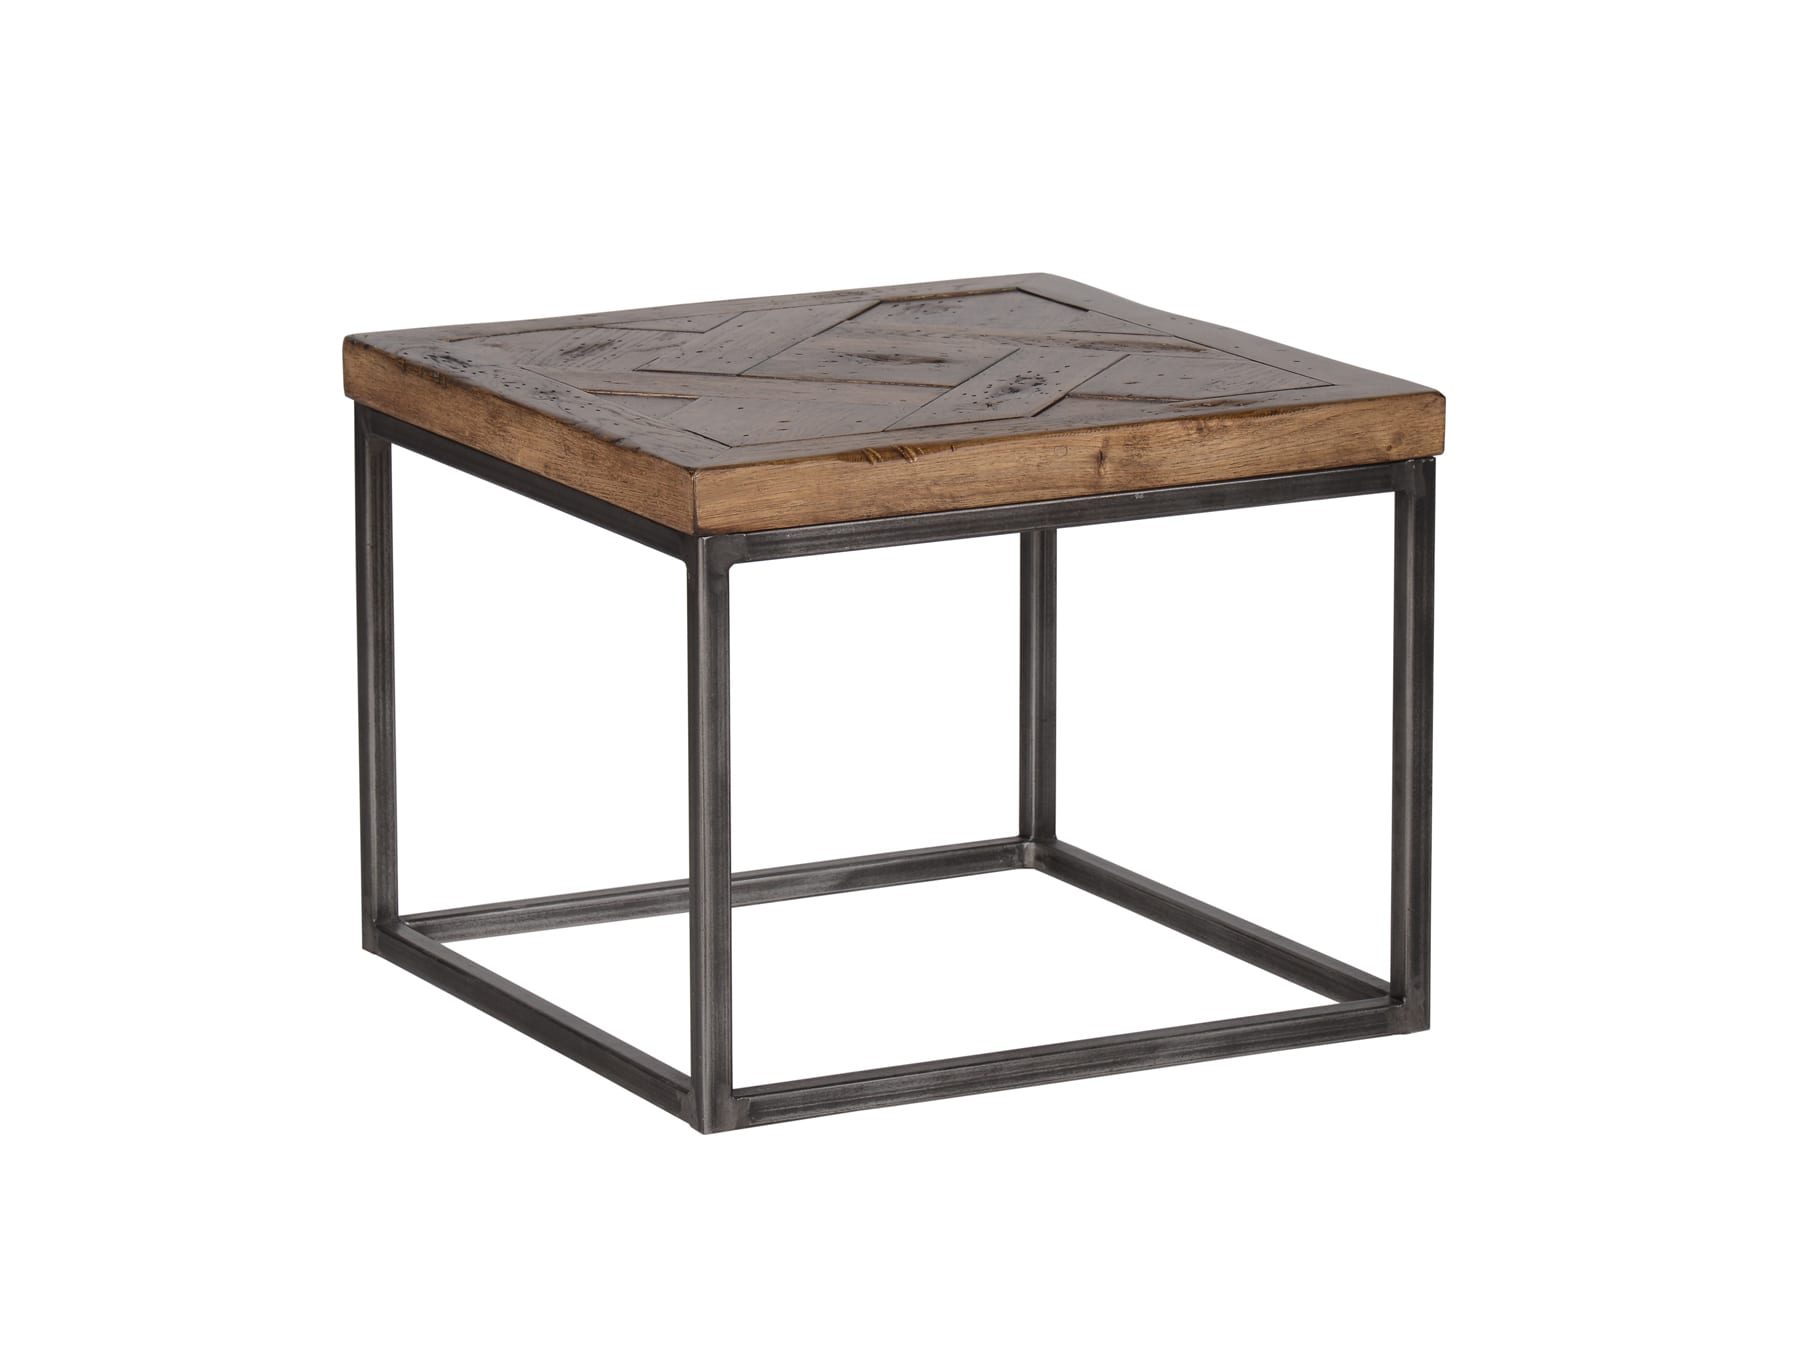 Halo Versailles Side Table available at McKenzie & Willis